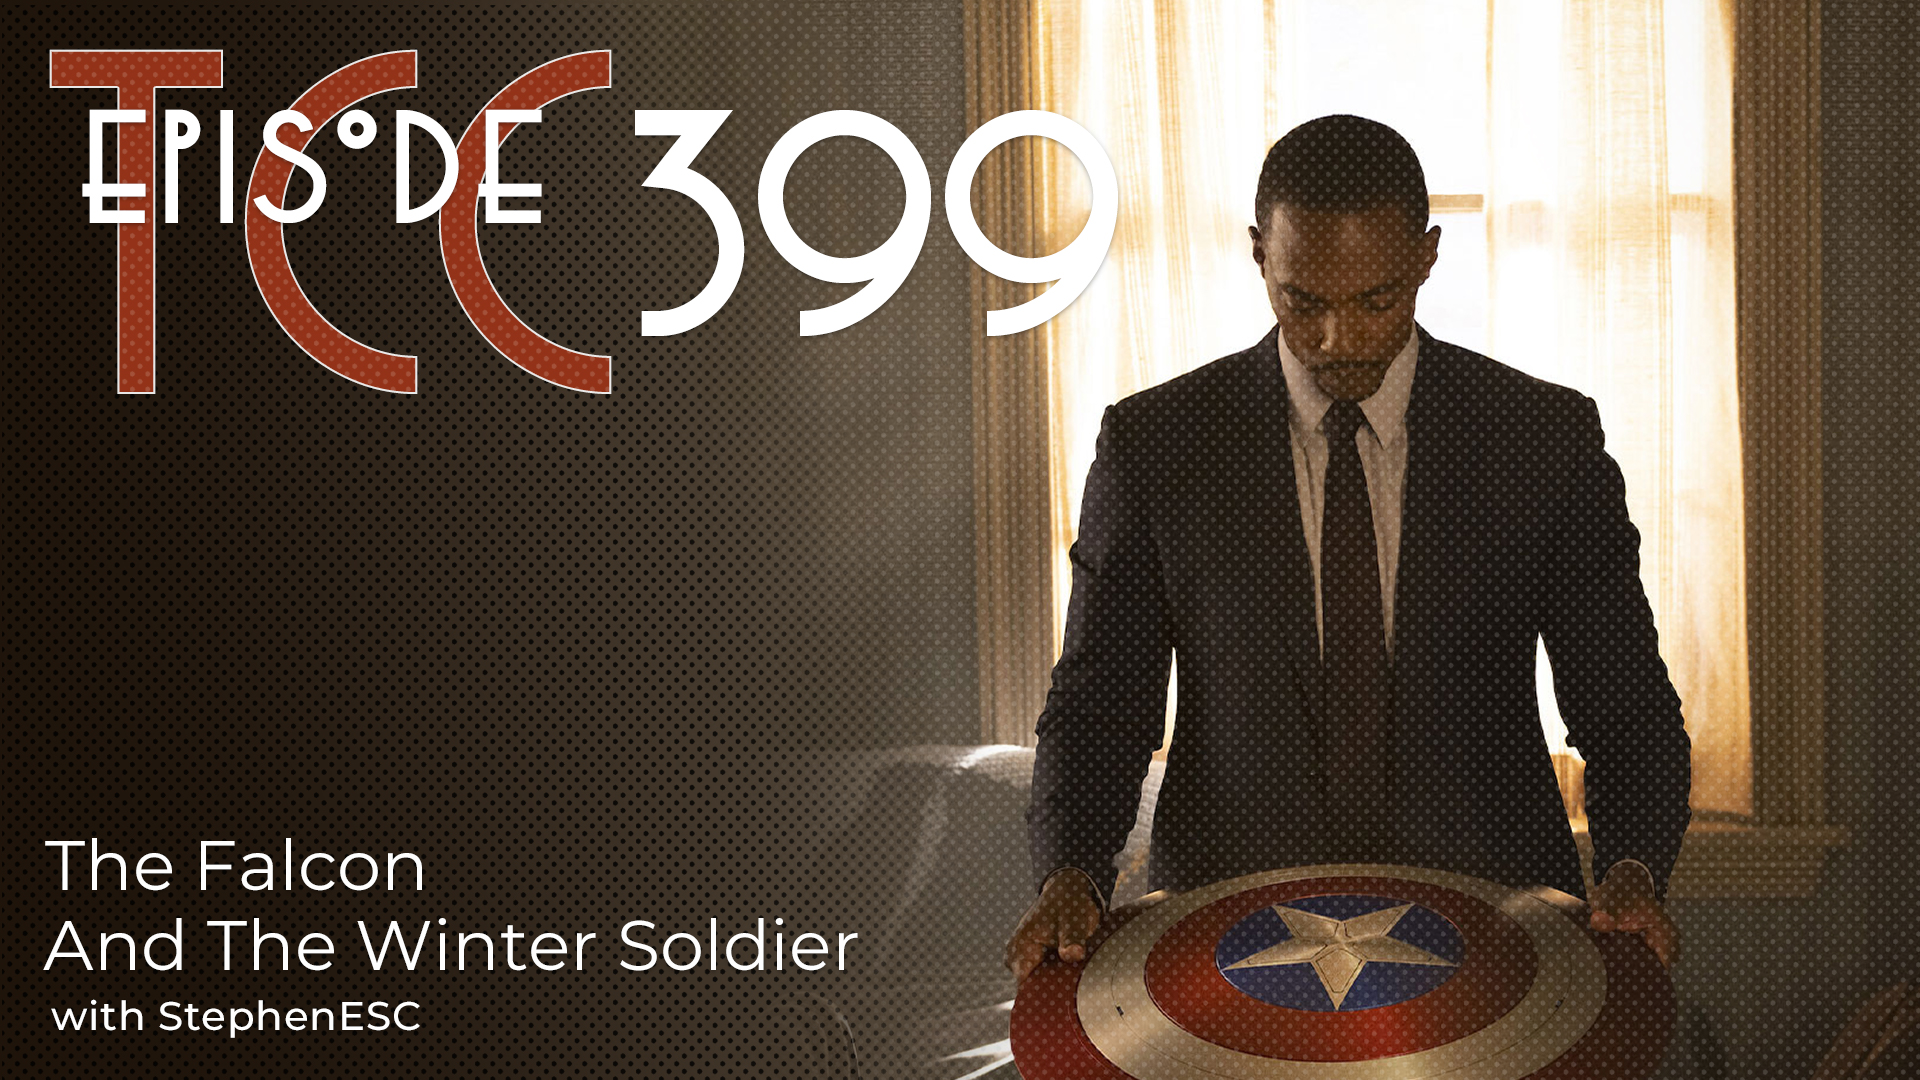 The Citadel Cafe 399: The Falcon And The Winter Soldier